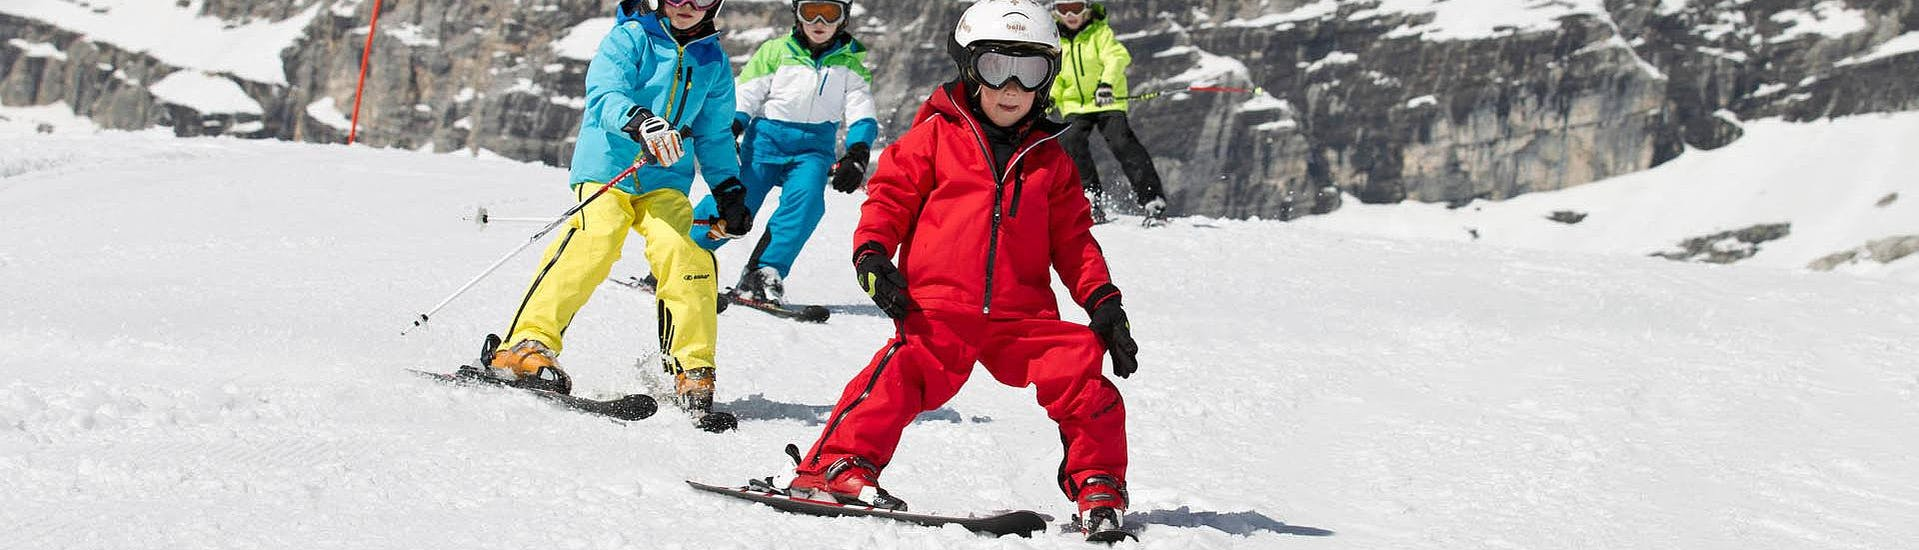 """Skiing Lessons """"Kids Compact"""" (4-7 years) - Beginners with Skischule Egon Hirt - Hero image"""